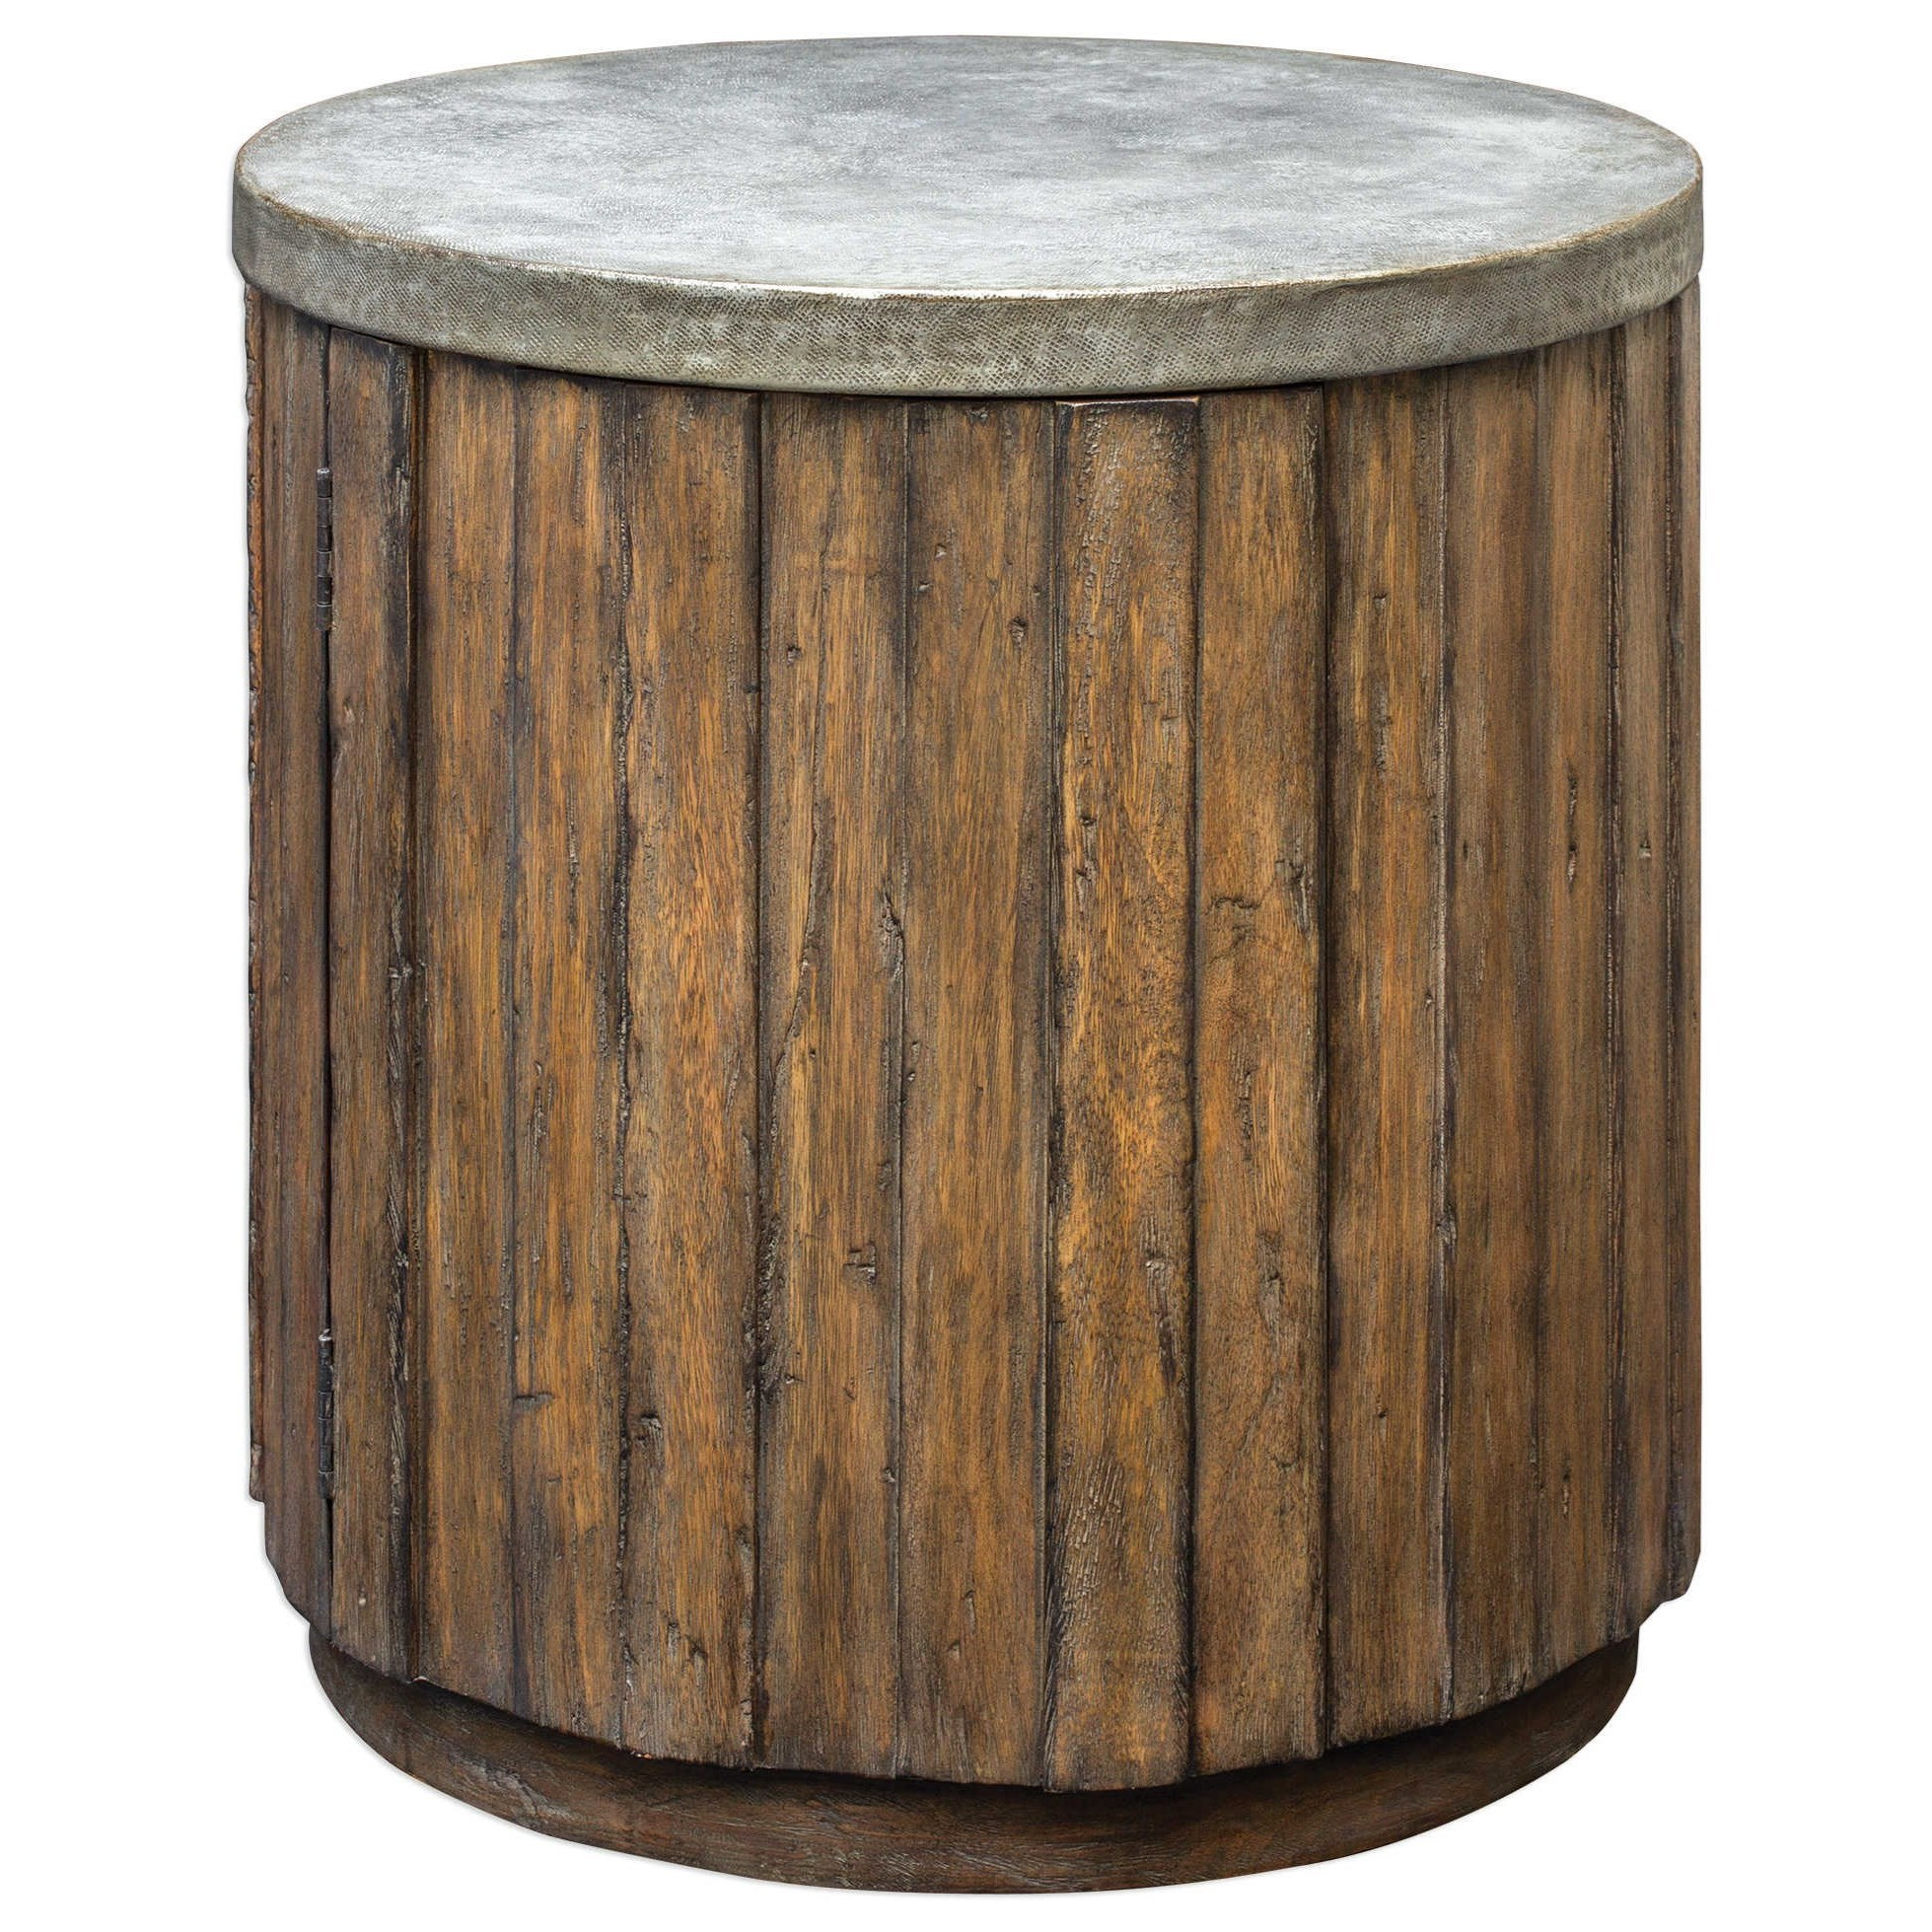 Accent Furniture - Occasional Tables Maxfield Wooden Drum Accent Table by Uttermost at Factory Direct Furniture